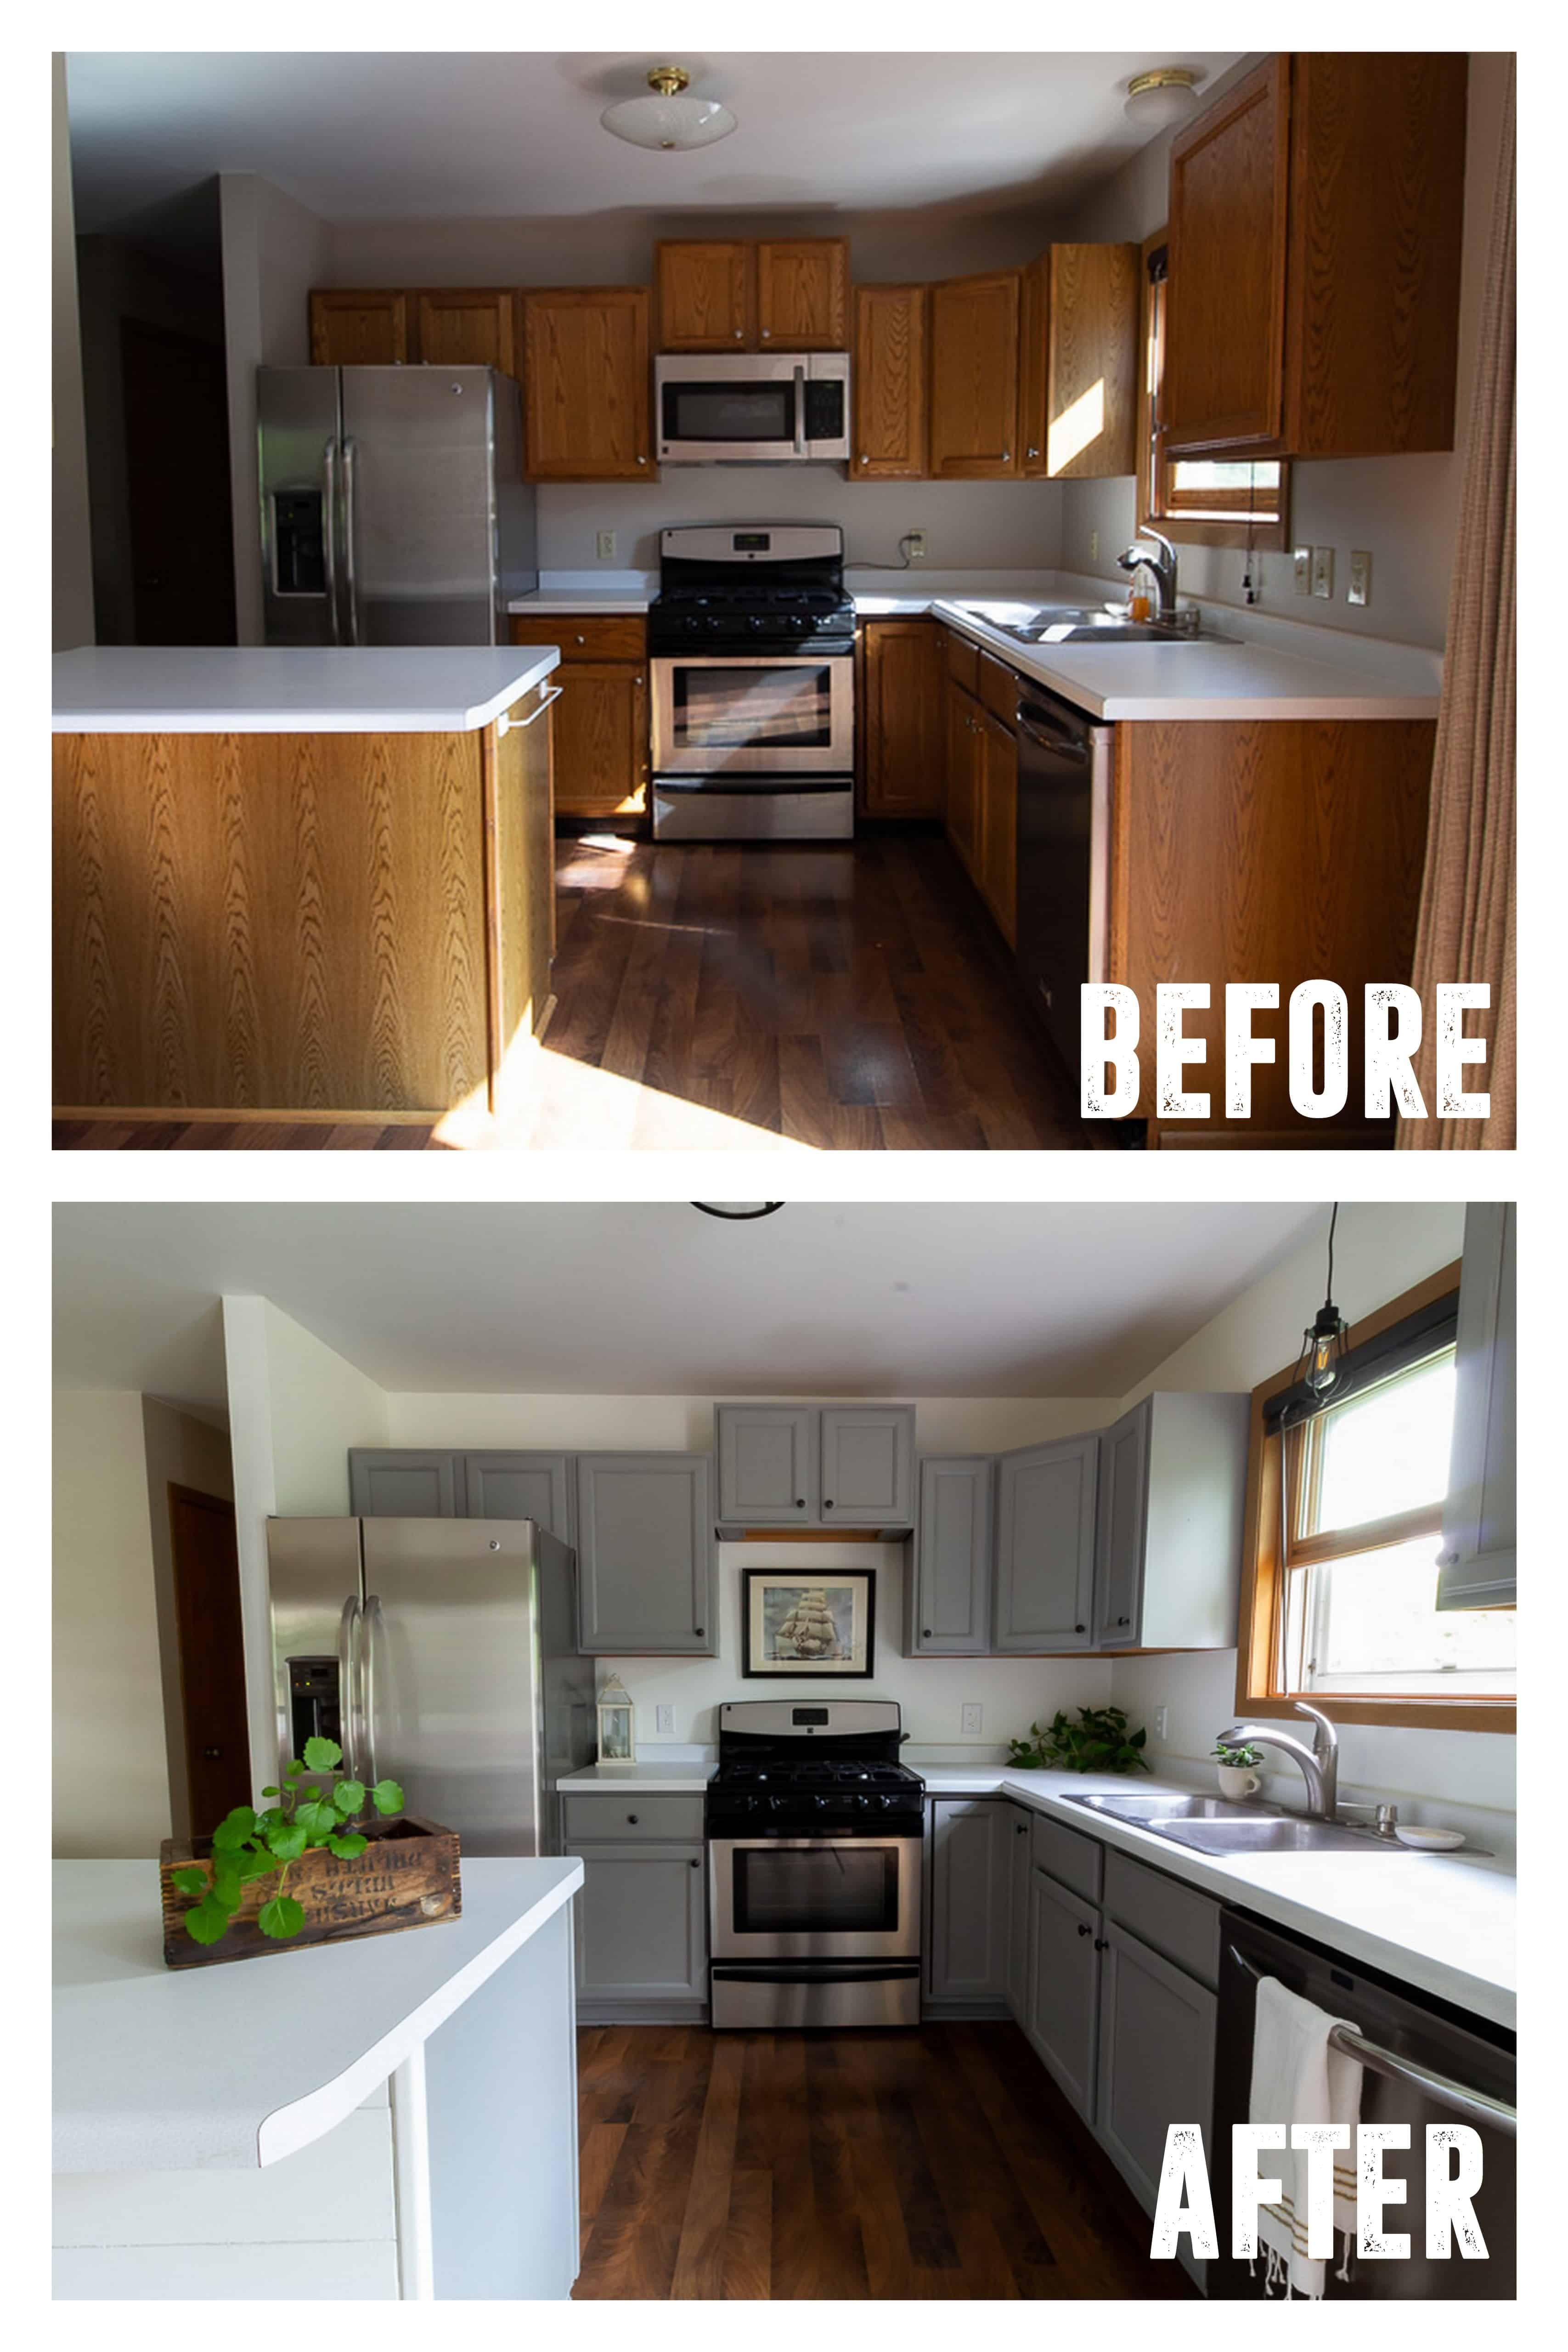 affordable kitchen updates in a weekend diy kitchen remodel updated kitchen diy kitchen on how to remodel your kitchen id=11491